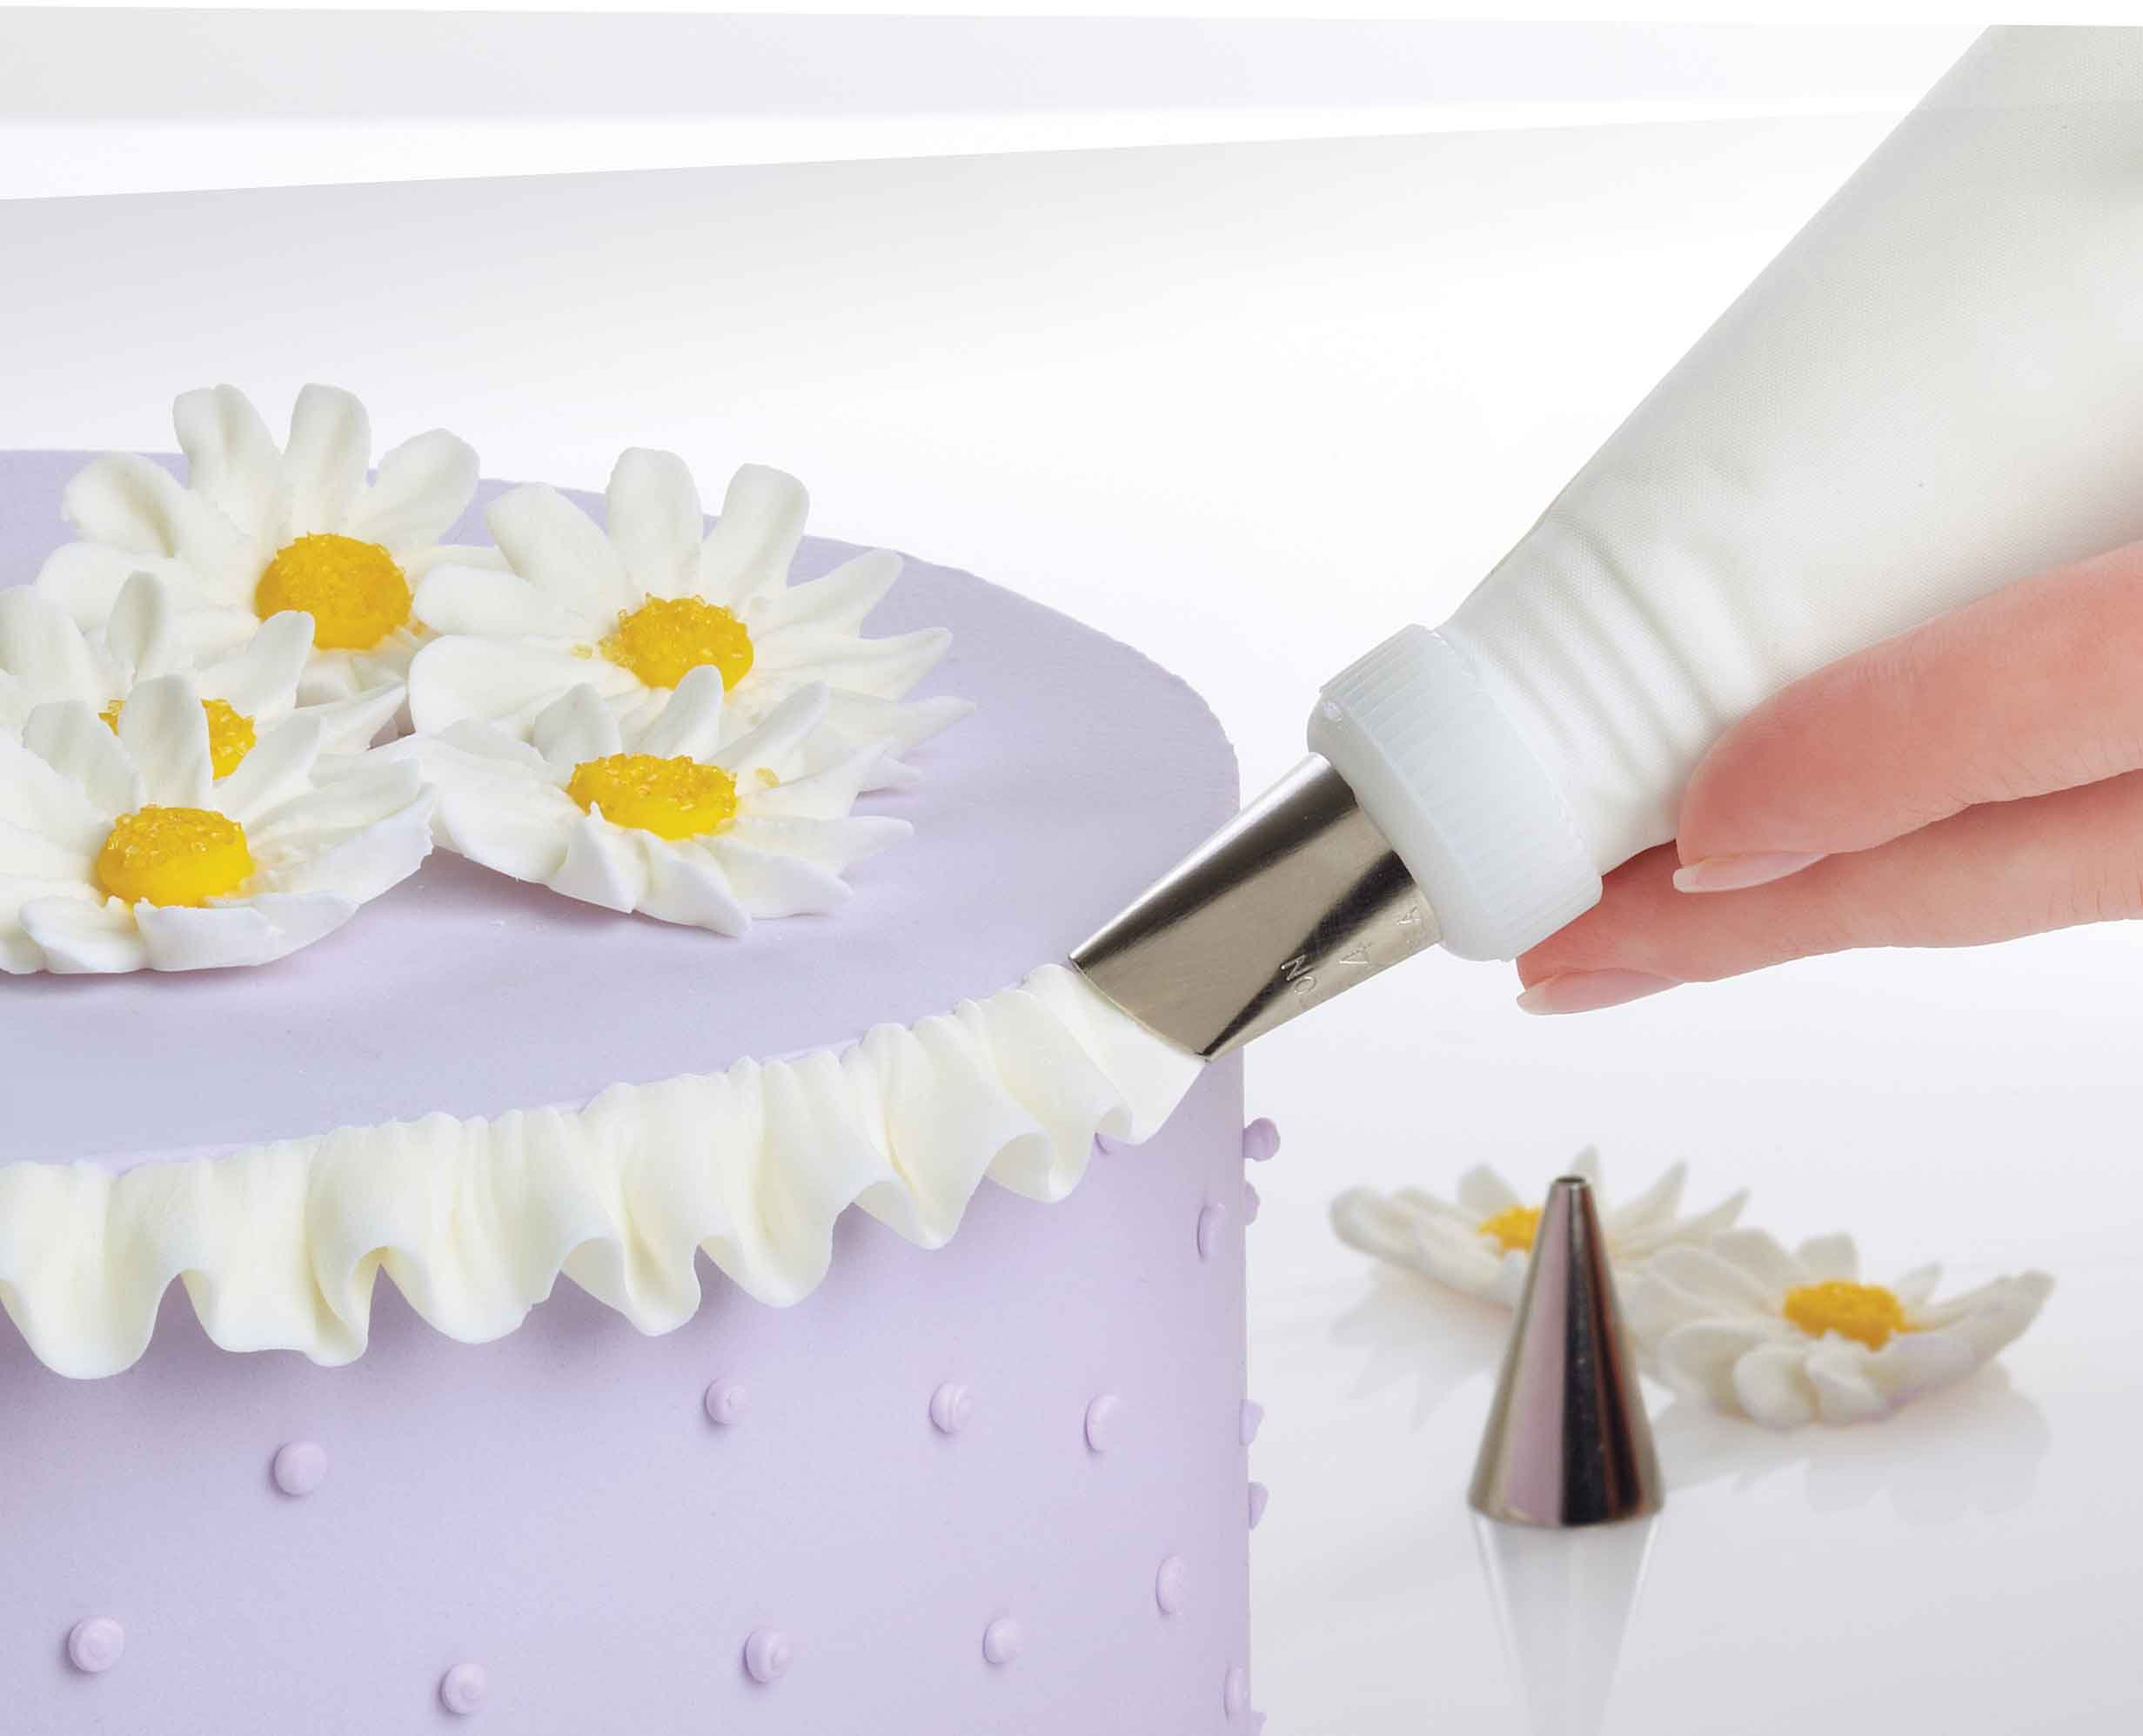 Cake Decoration Kit : Wilton 2109-0309 Ultimate Professional Cake Decorating Set ...